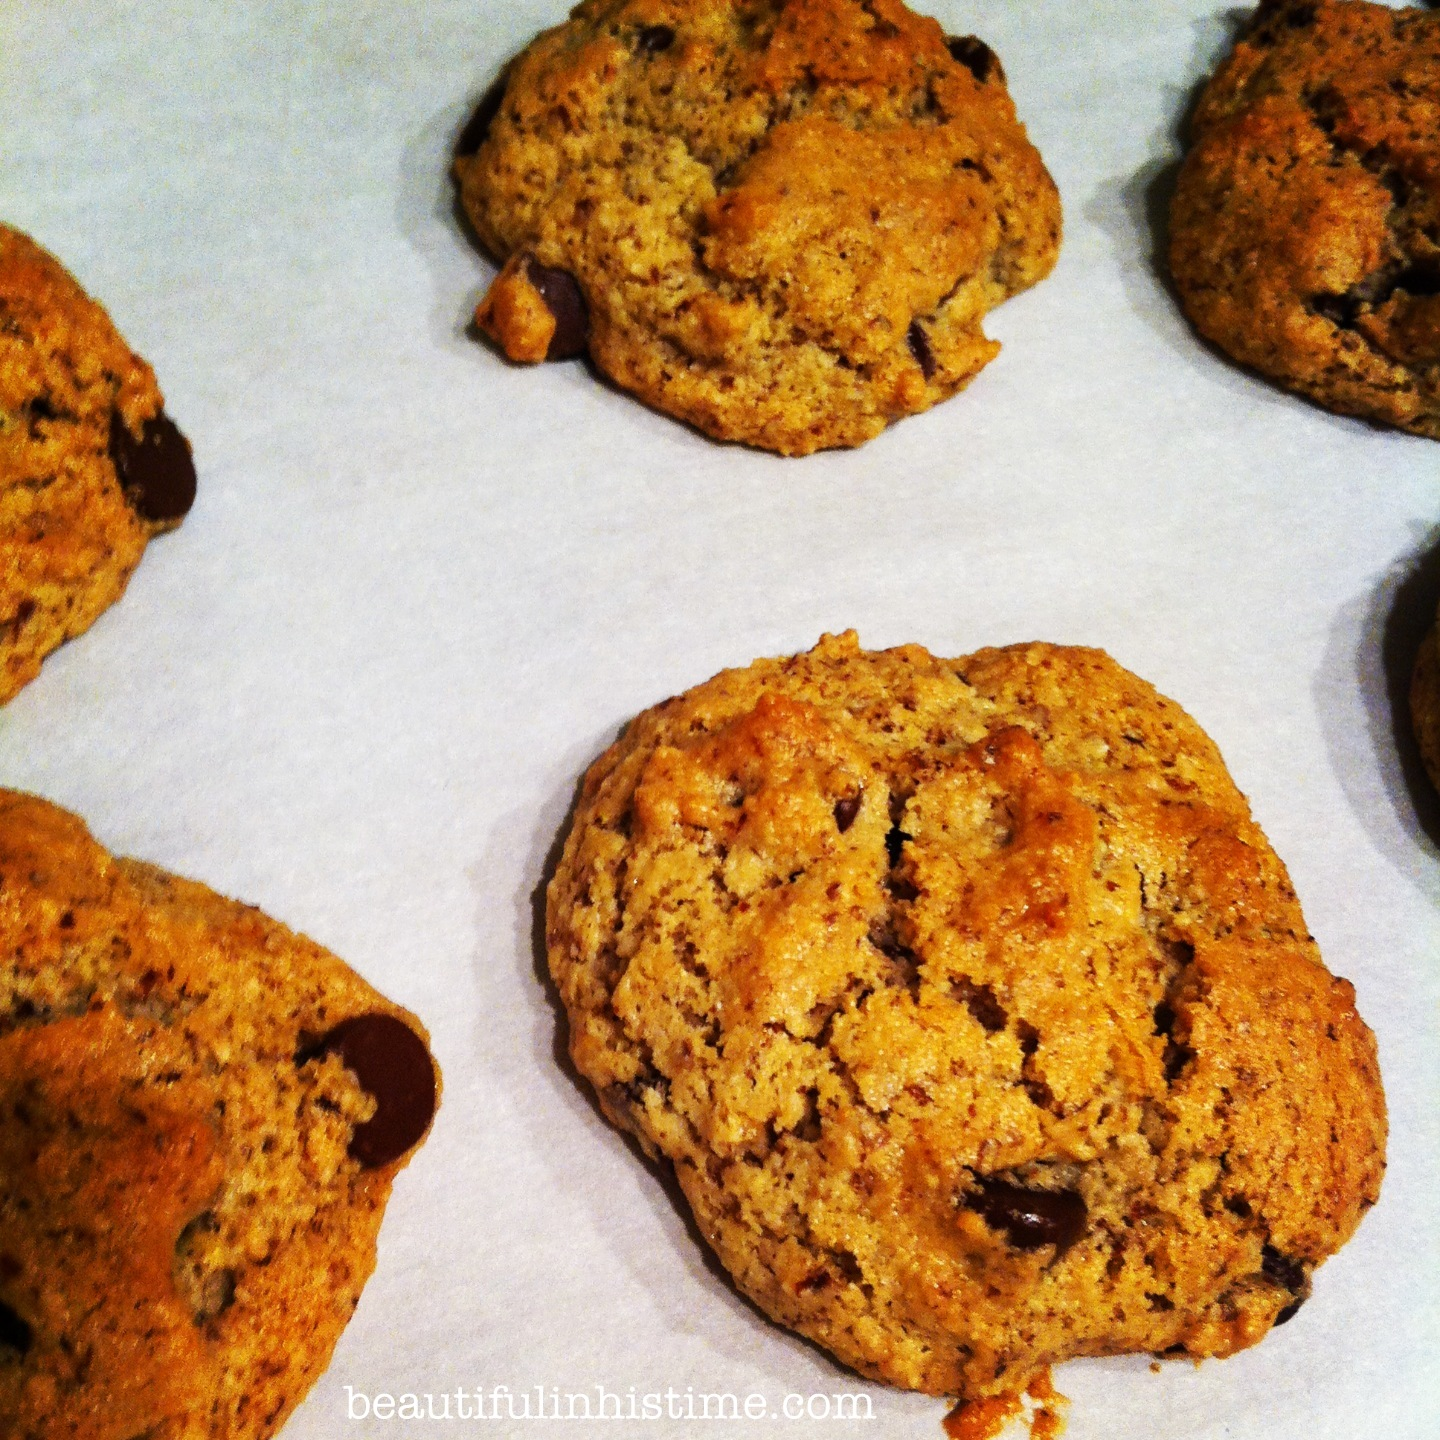 Paleo chocolate chip cookies Beauty in the Mess Edition 07.09.13 @beautifulinhistime.com